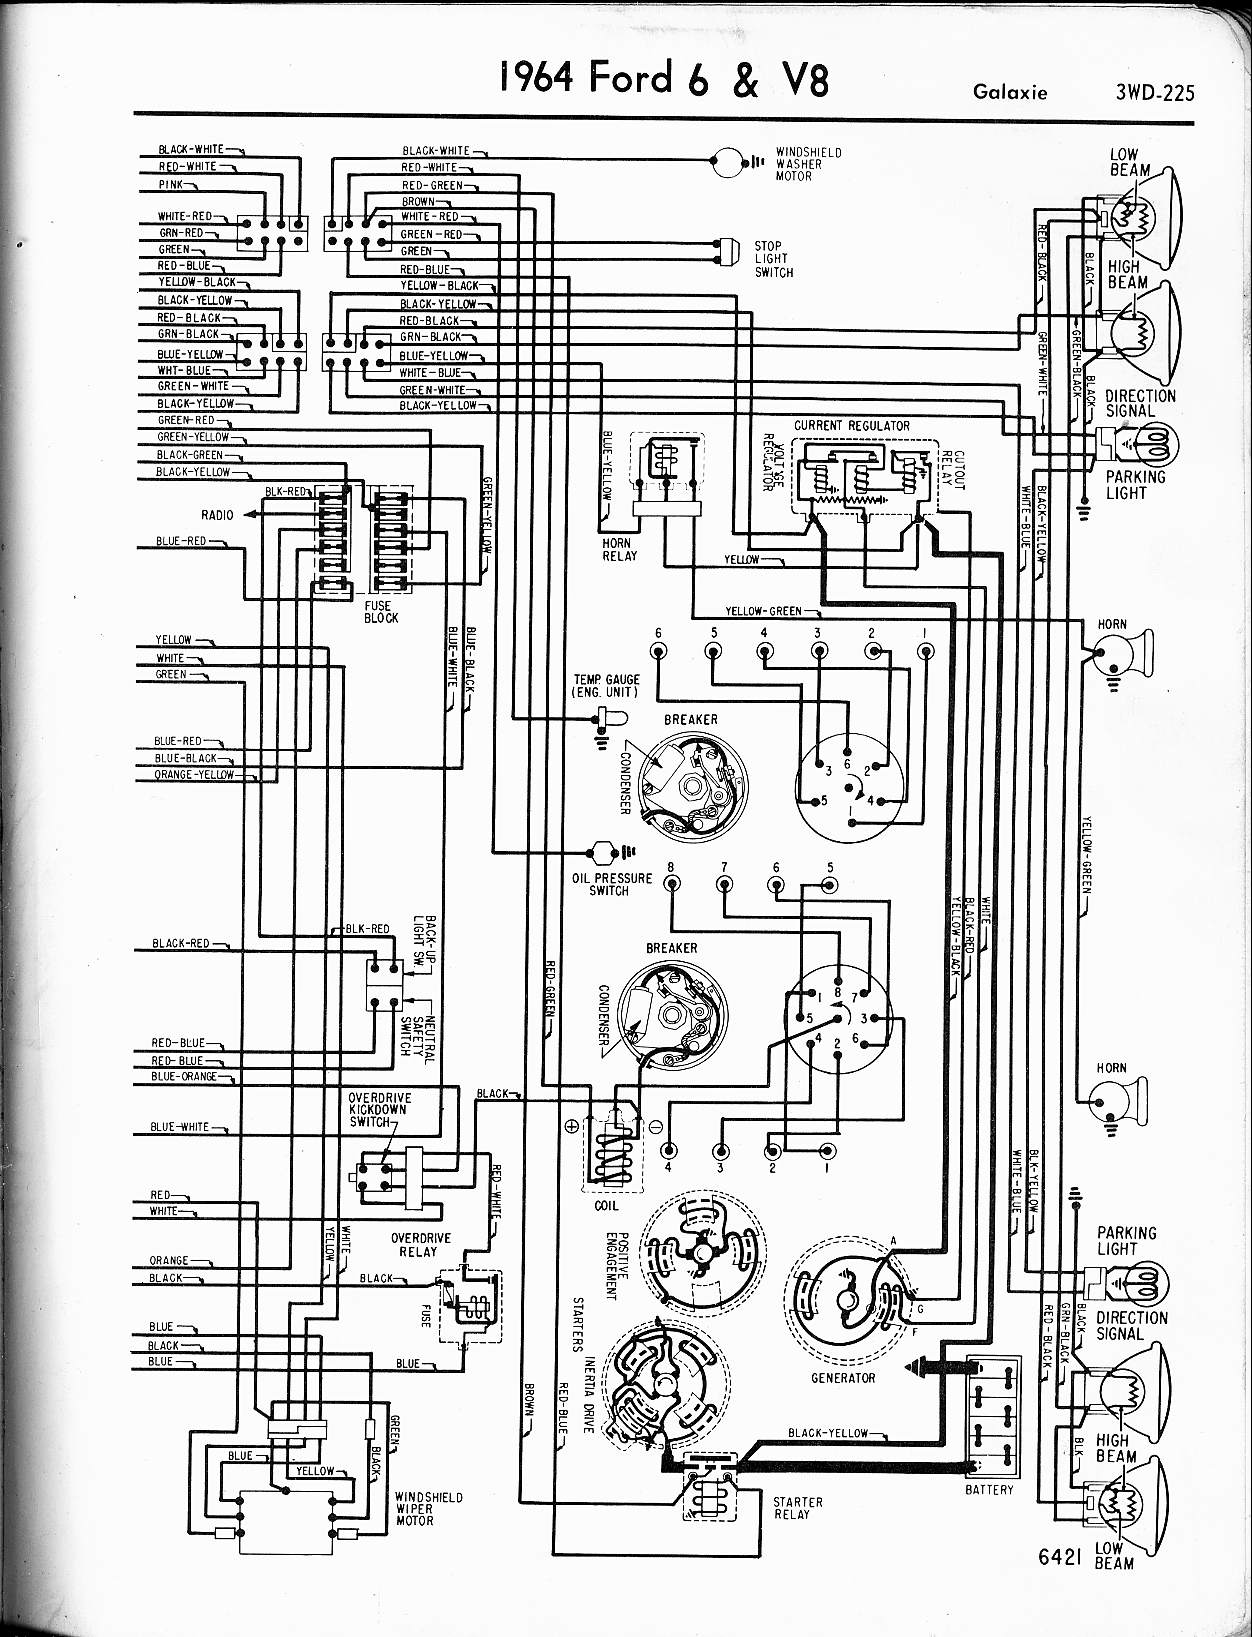 MWire5765 225 64 falcon wiring diagram 64 comet ignition wiring \u2022 wiring ba falcon wiring diagram free download at gsmportal.co